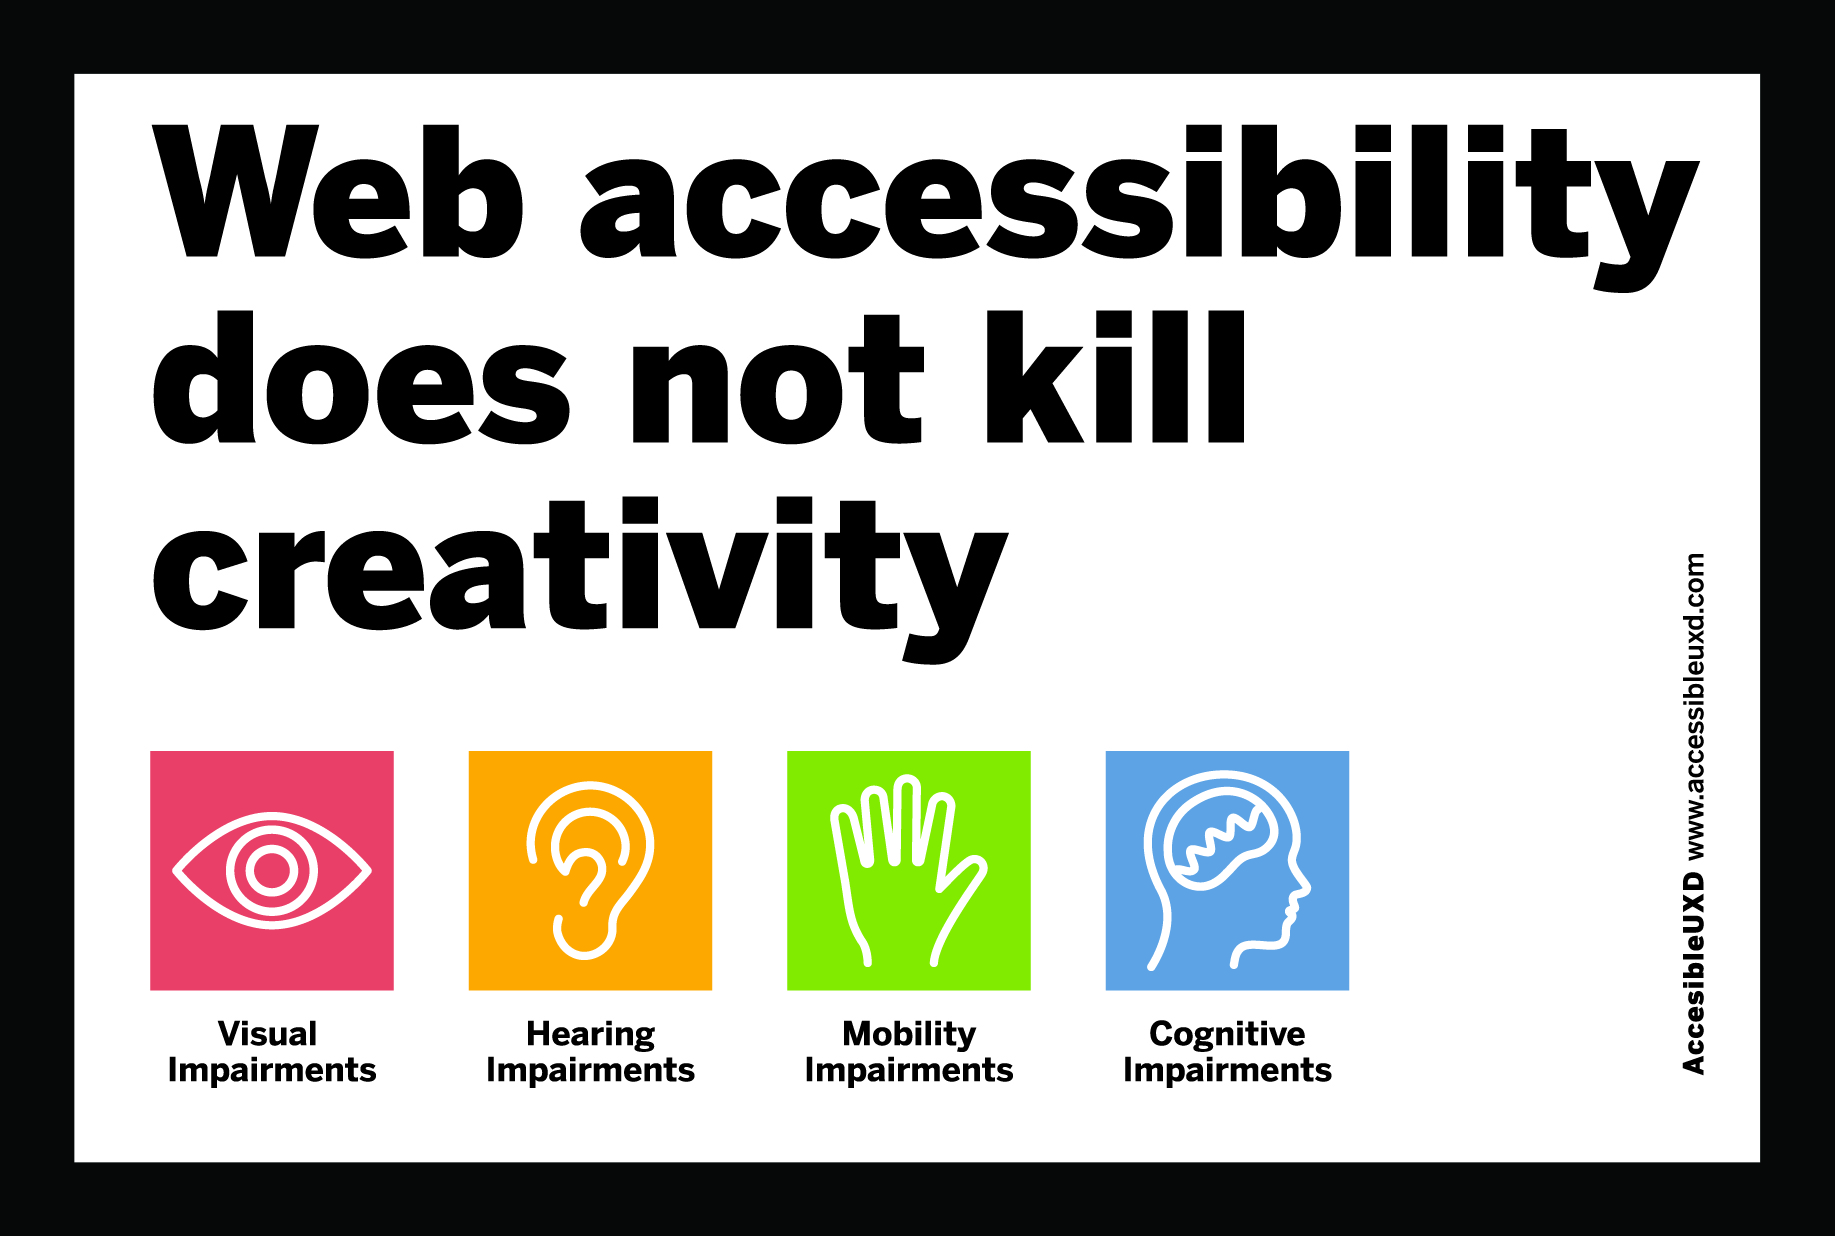 Web accessibility does not kill creativity